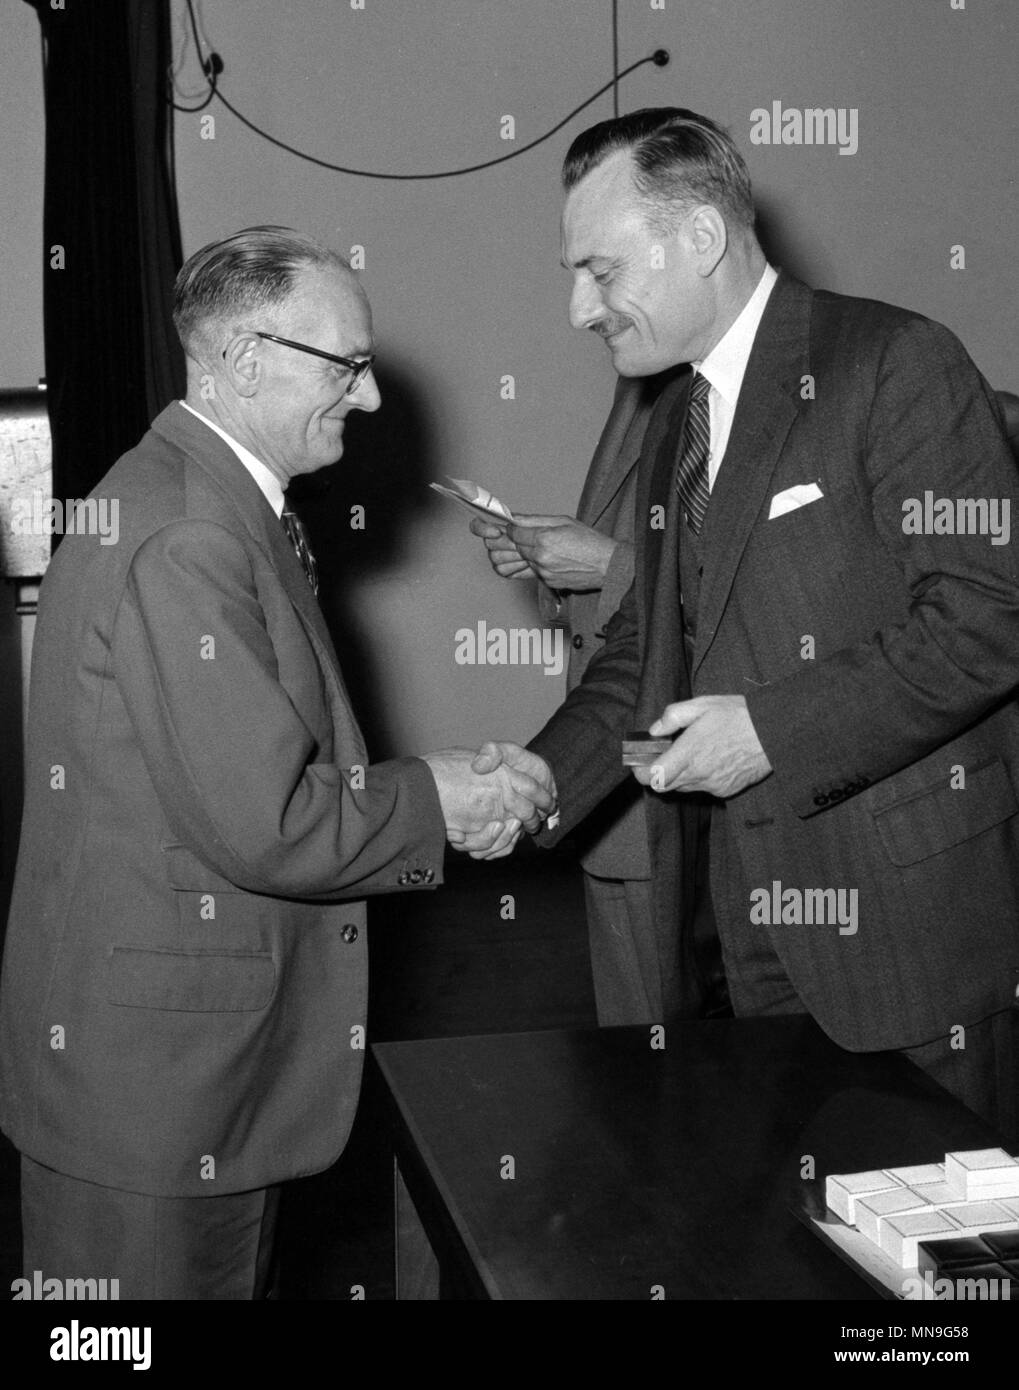 Mr E. Goodyear, of Hunslet Hall Road, Leeds, receives his silver-gilt badge from Minister of Health, Enoch Powell, at a presentation of long-service awards to donors to the National Blood Transfusion Service at the Ministry in London. The silver-gilt badge was awarded to Mr Goodyear, who became a donor in 1941, for giving 50 or more blood donations. - Stock Image